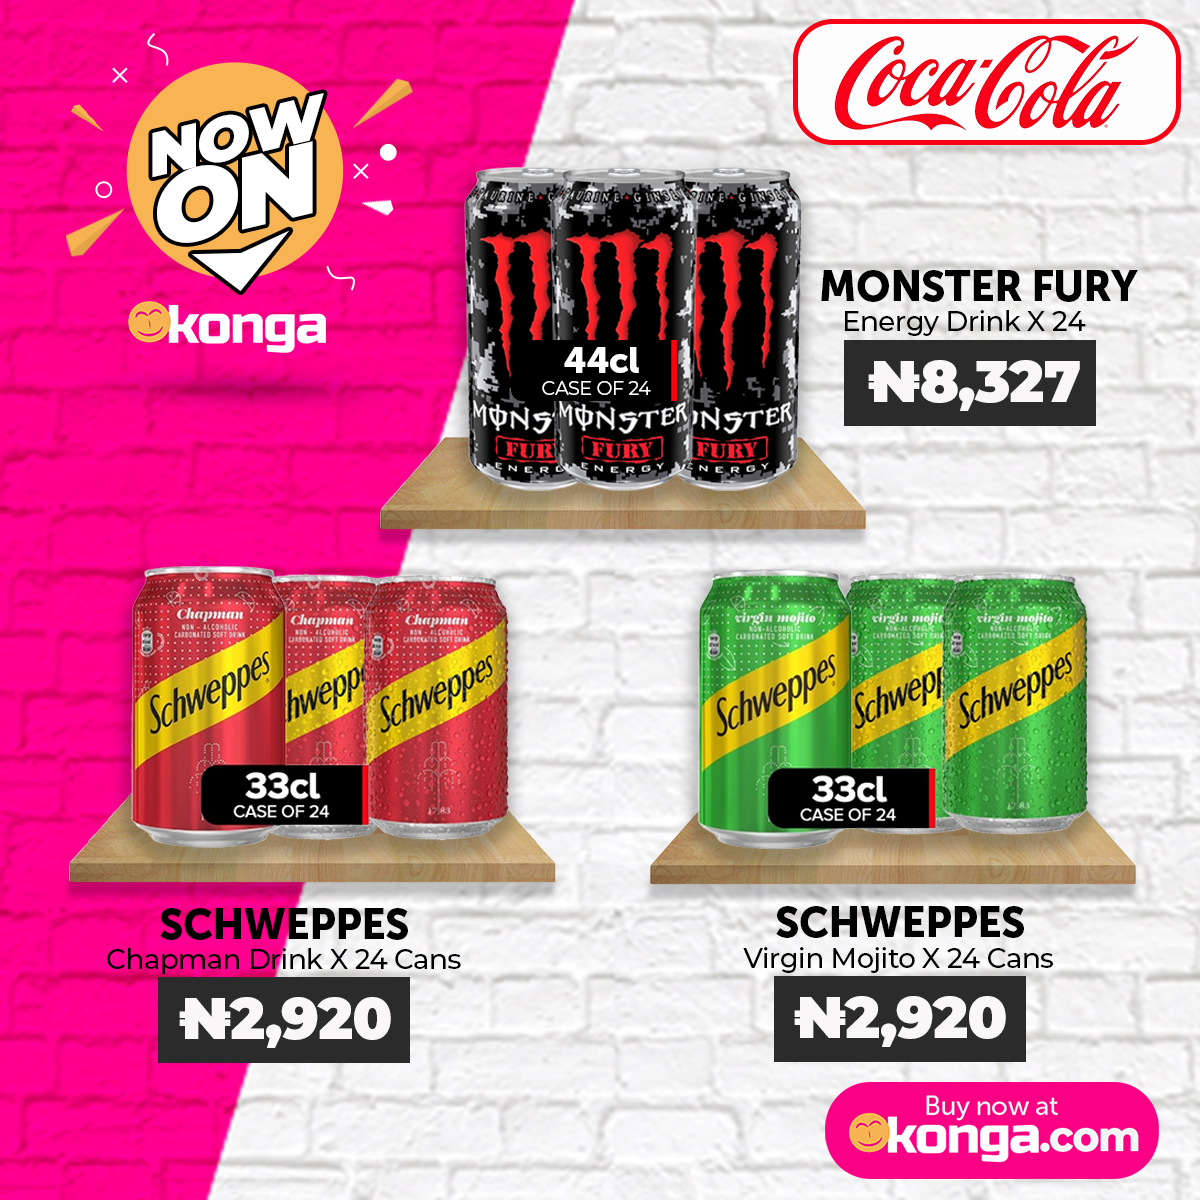 Konga Partners with Coca Cola